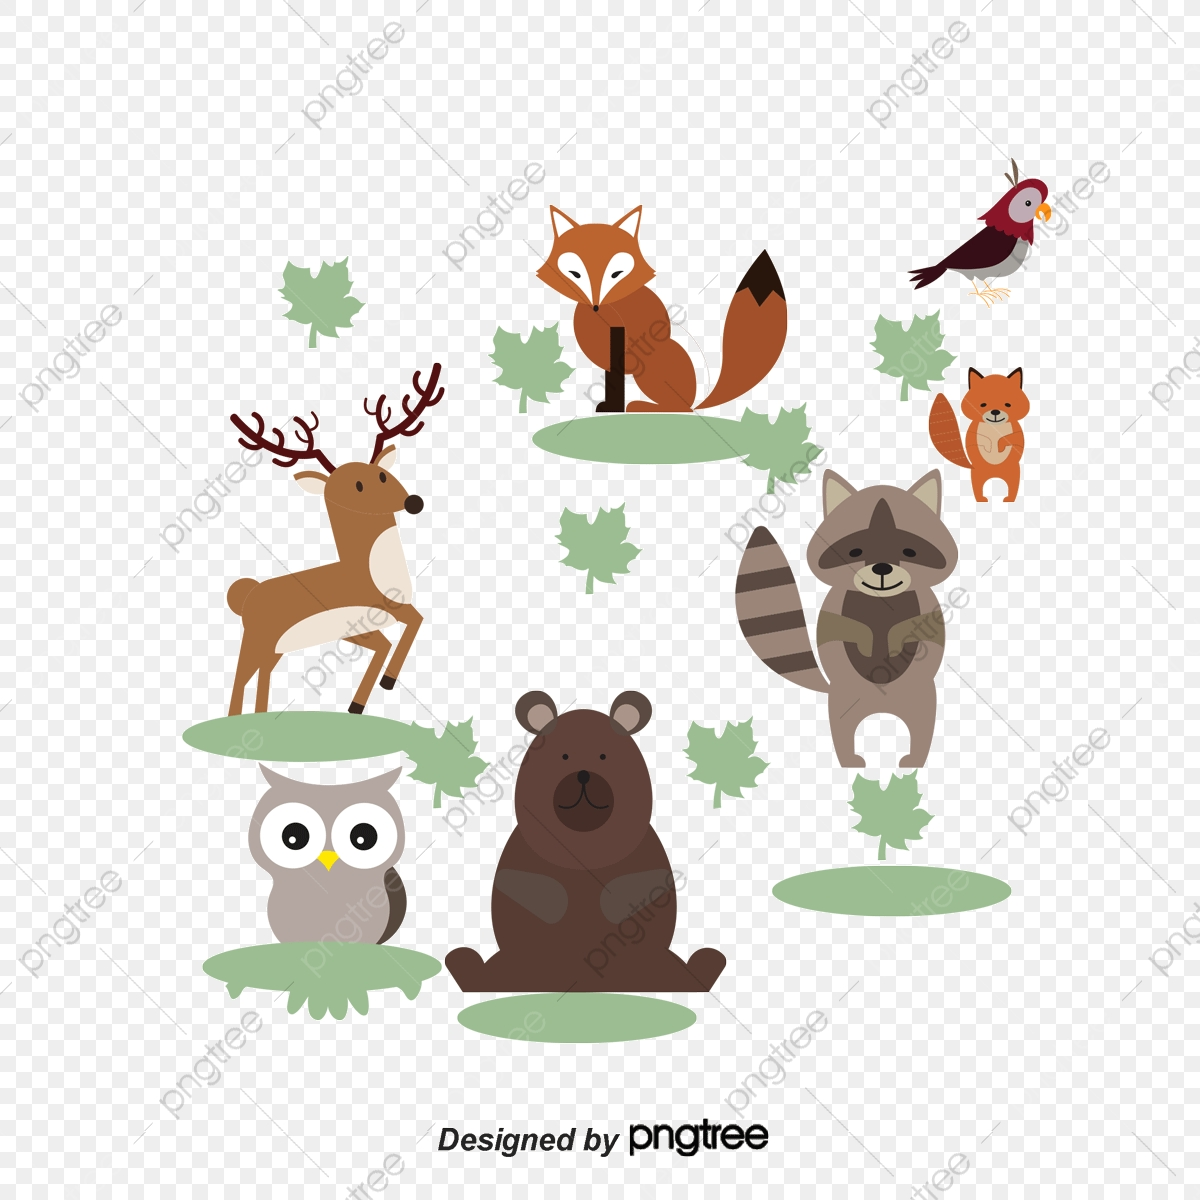 9 Cute Winter Animals, Winter Vector, Cute Clipart, Winter Clipart.